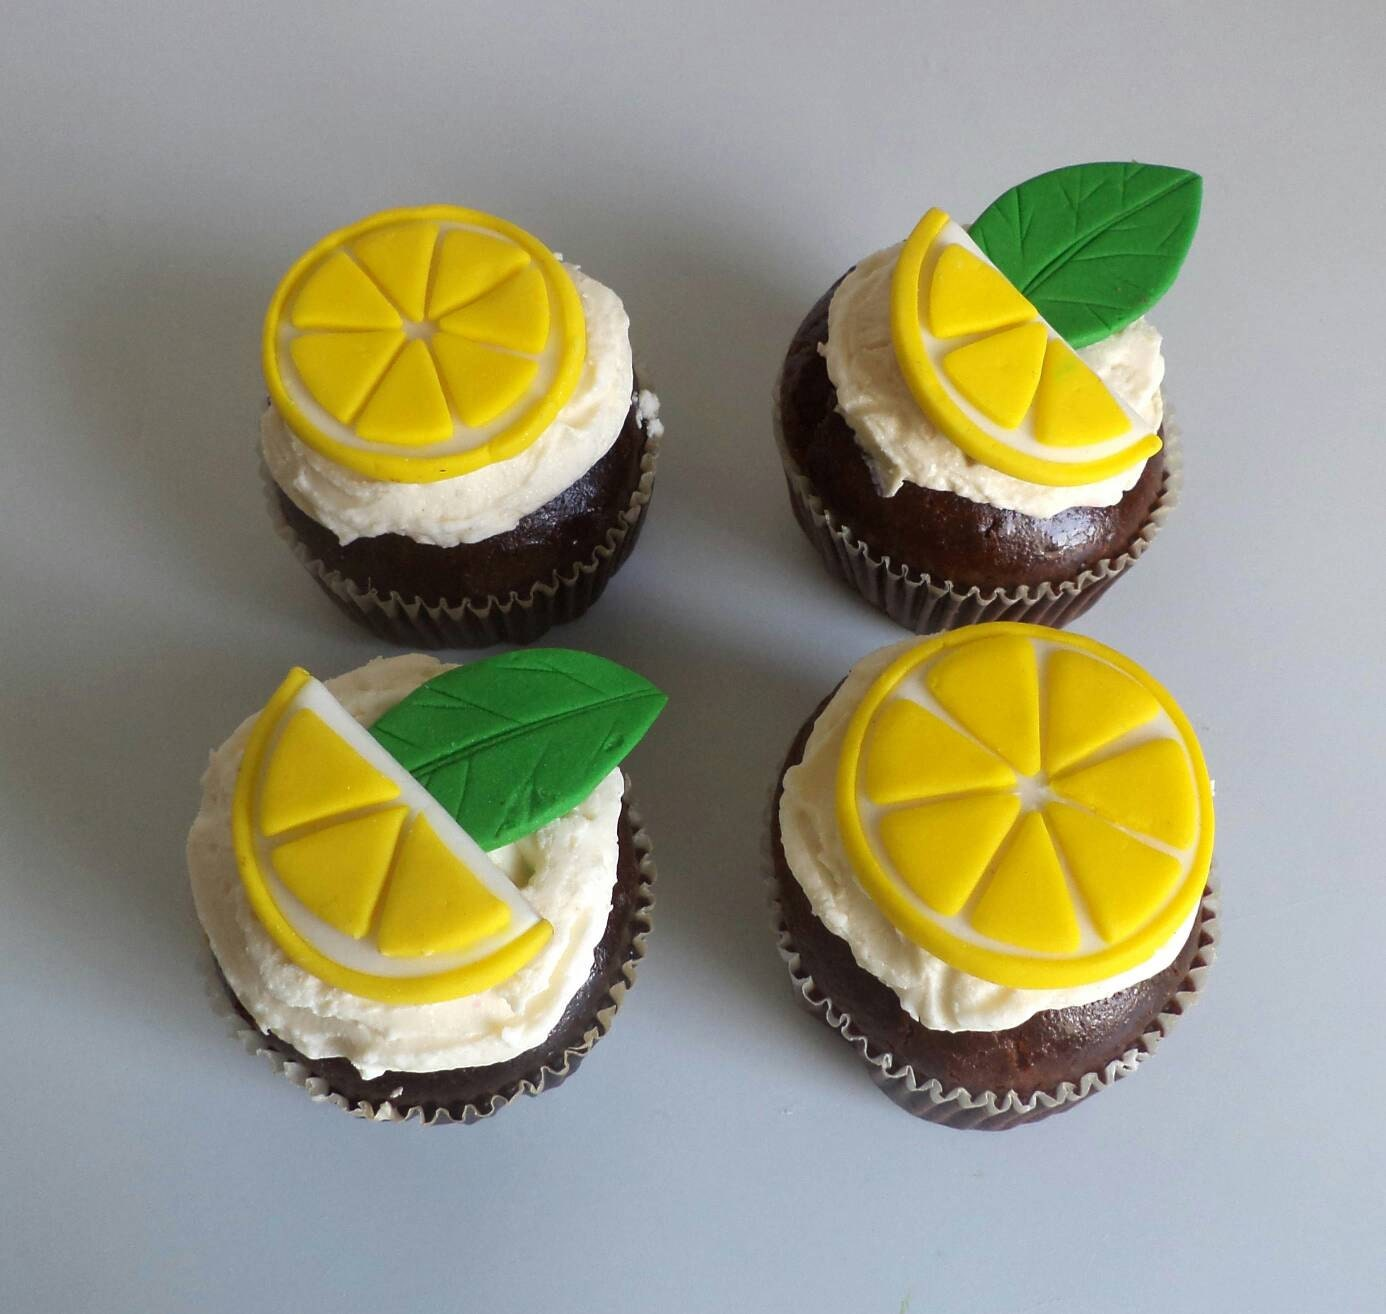 Fondant Lemon Slices and Leaves for Cupcake and Cake Toppers